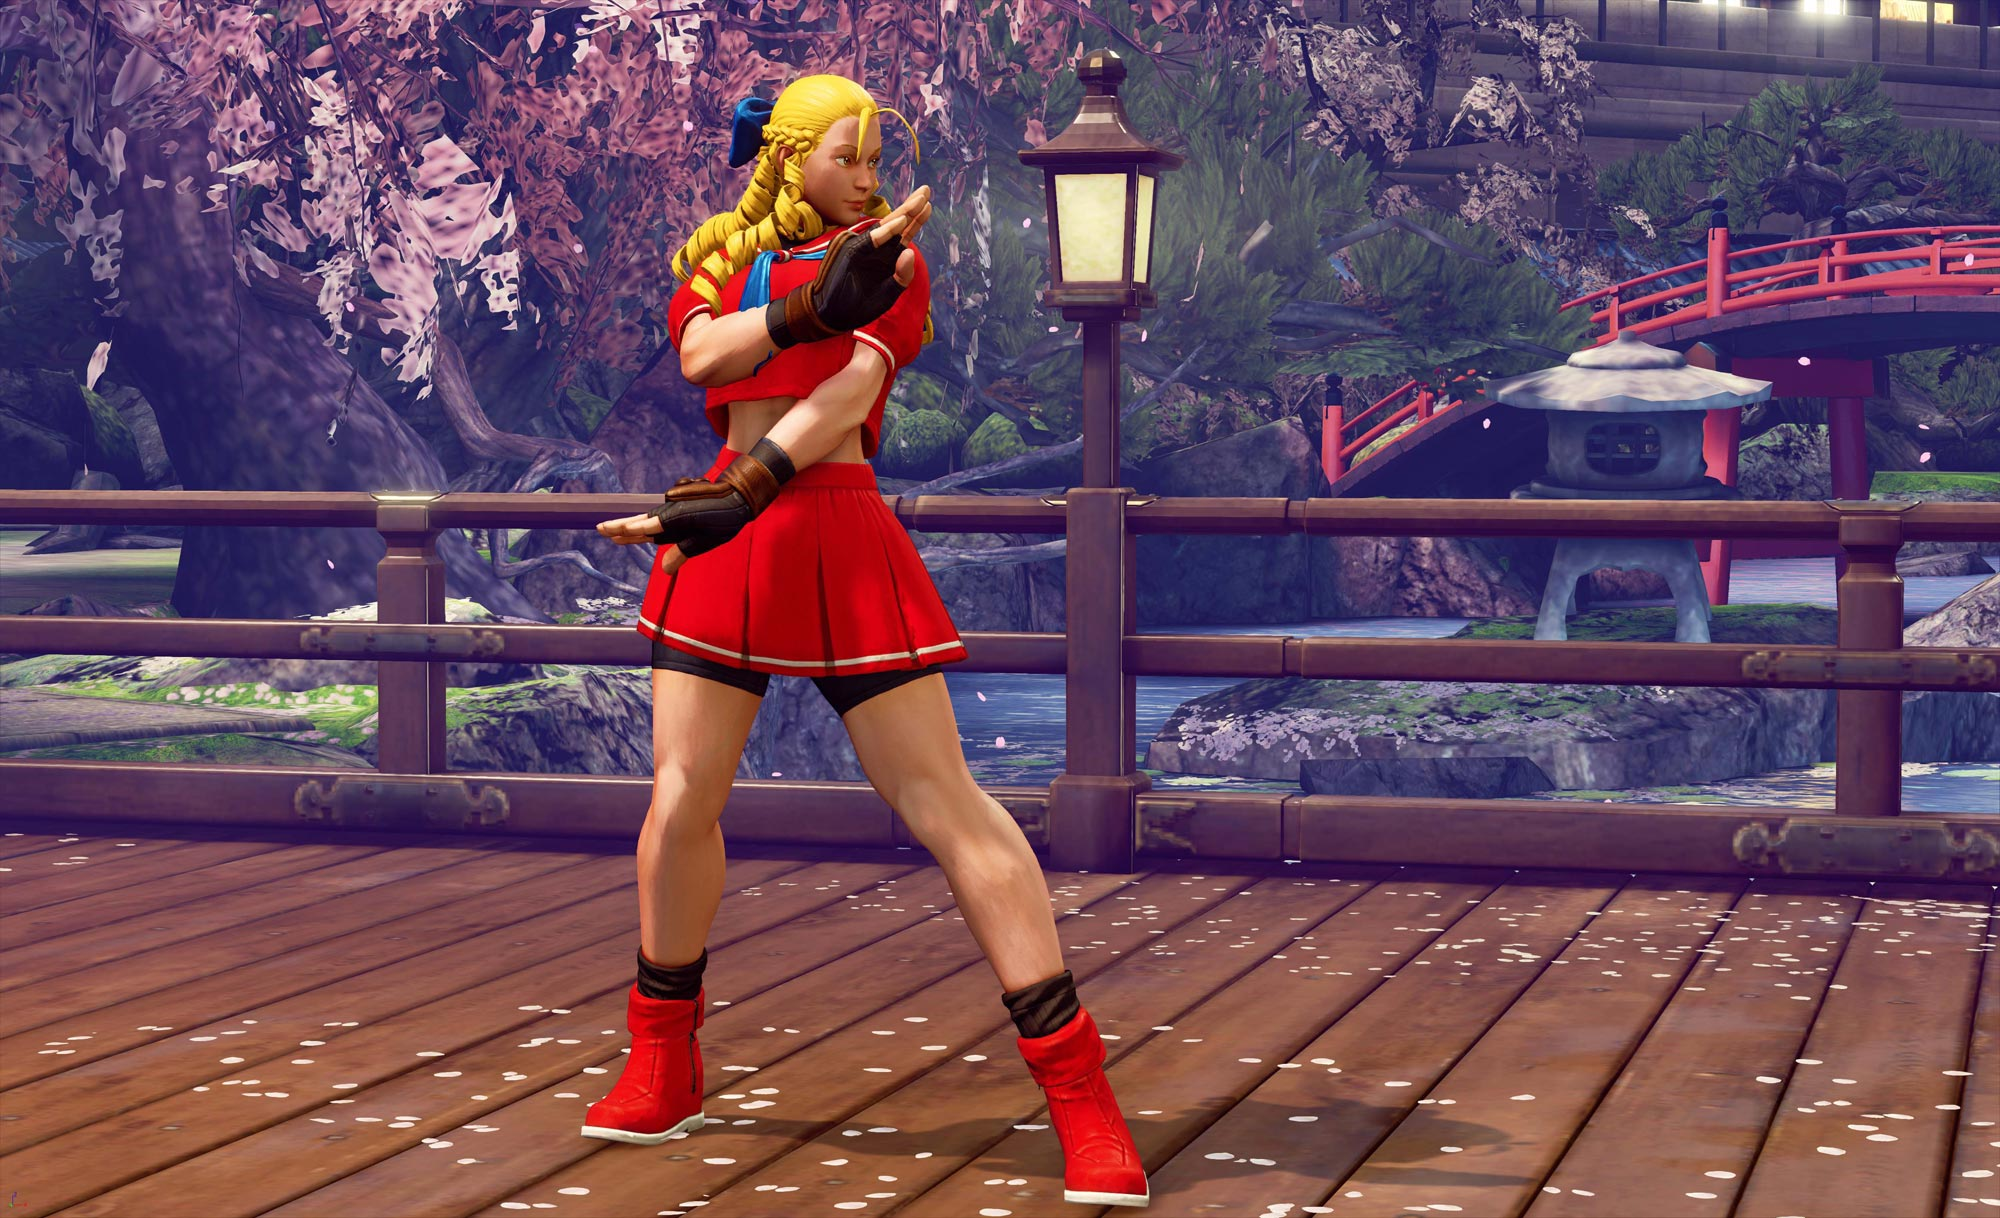 New hoilday and classic costumes in Street Fighter 5 8 out of 10 image gallery